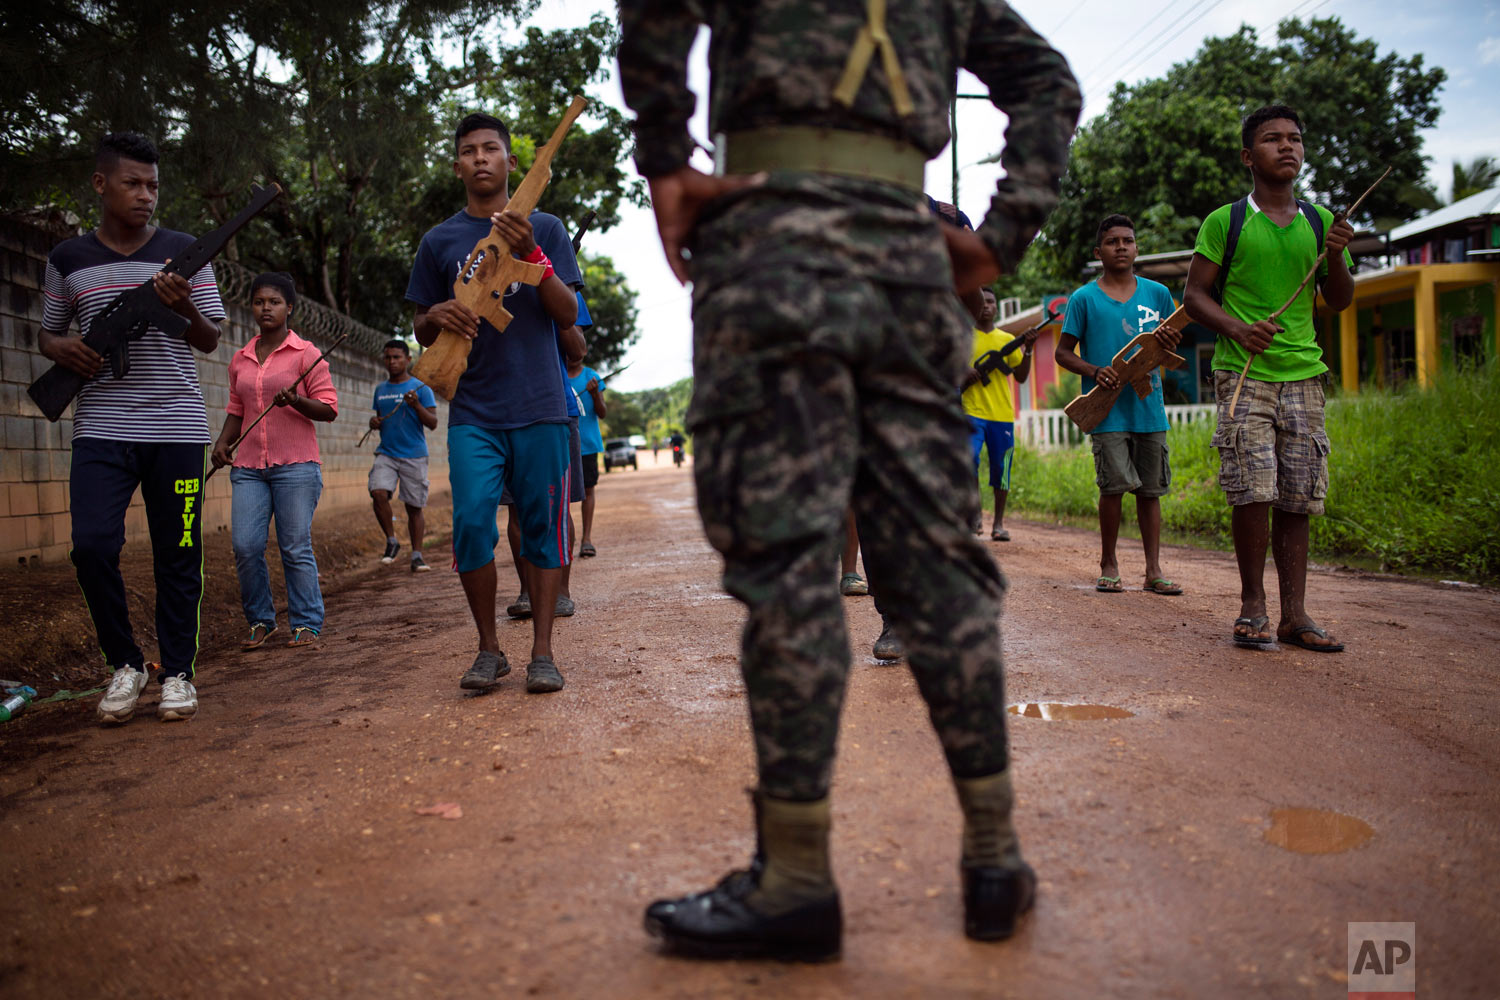 In this Feb 5, 2018 photo, students practice their routine to perform in an independence military parade supervised by a Honduran Army soldier, in Puerto Lempira, Honduras. (AP Photo/Rodrigo Abd)